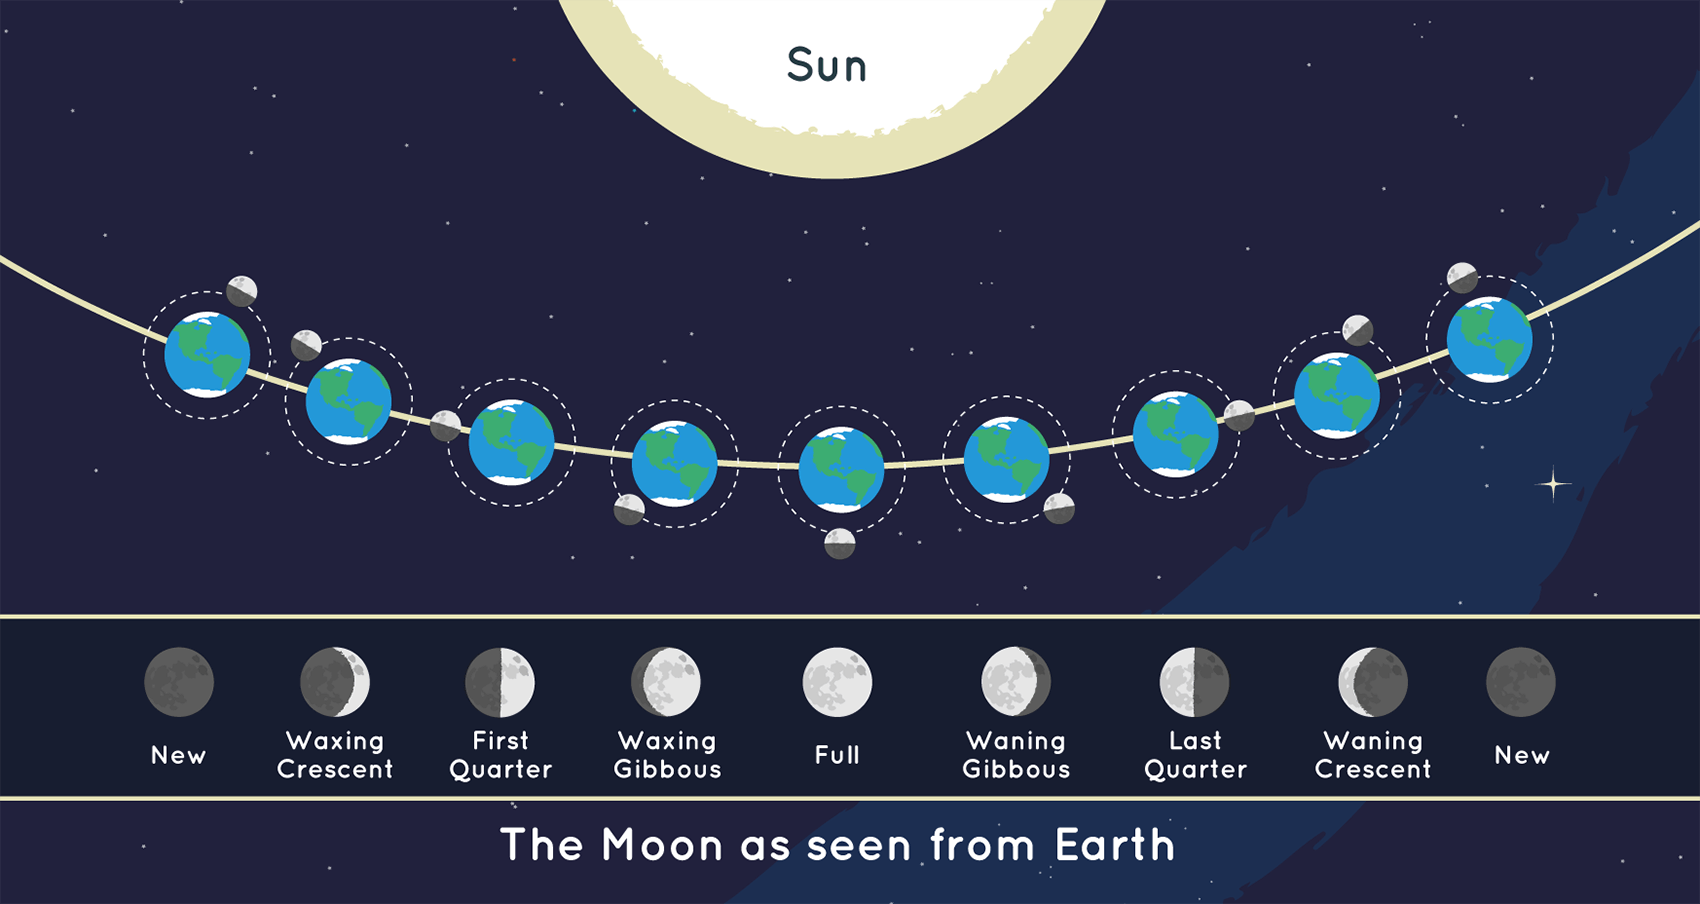 The position of the Moon and the Sun during Each of the Moon's phases and the Moon as it appears from Earth during each phase.